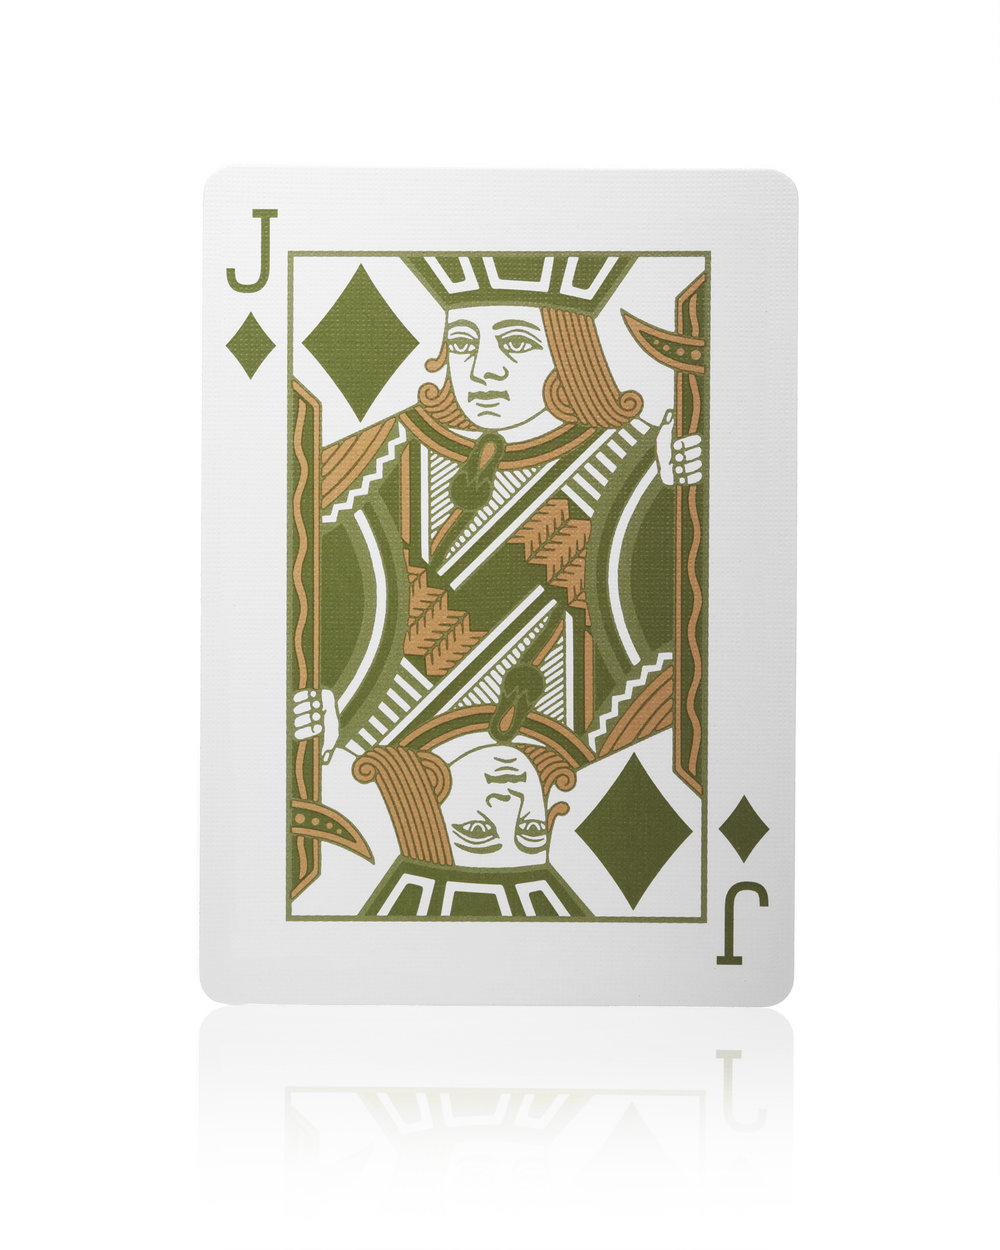 110330-PlayingCards-PlayingCards-005 copy.jpg